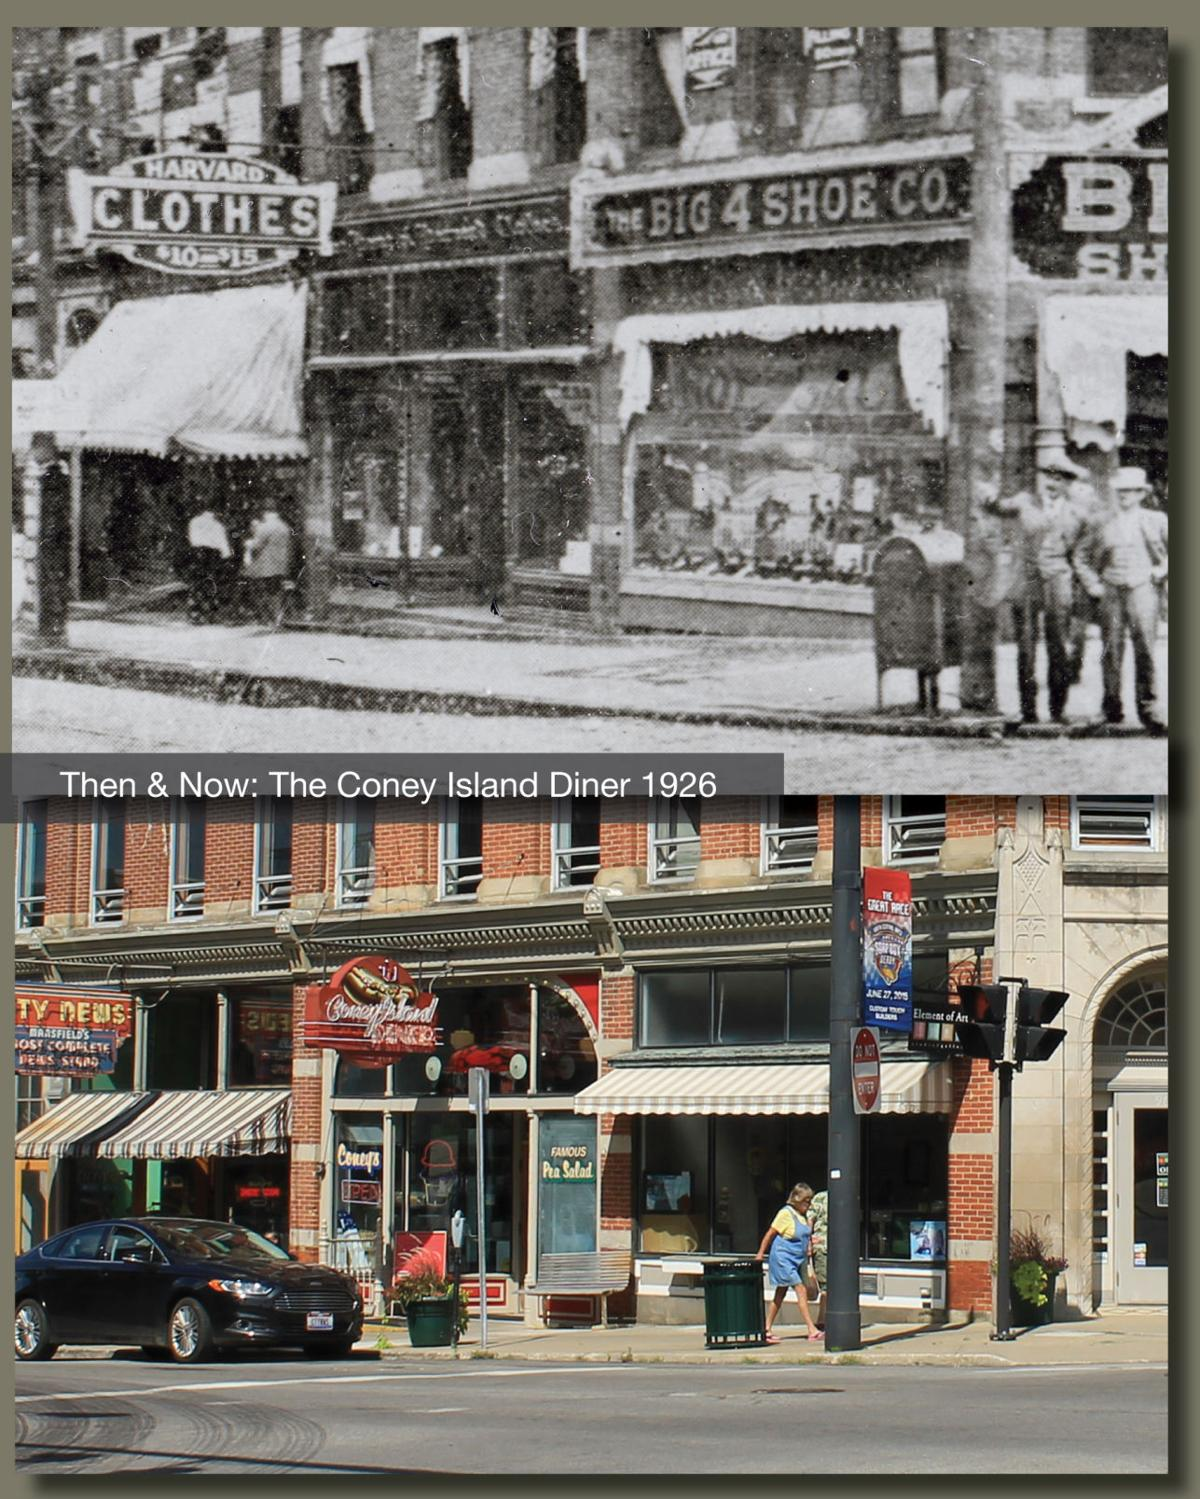 Then & Now: Coney Island Diner 1926